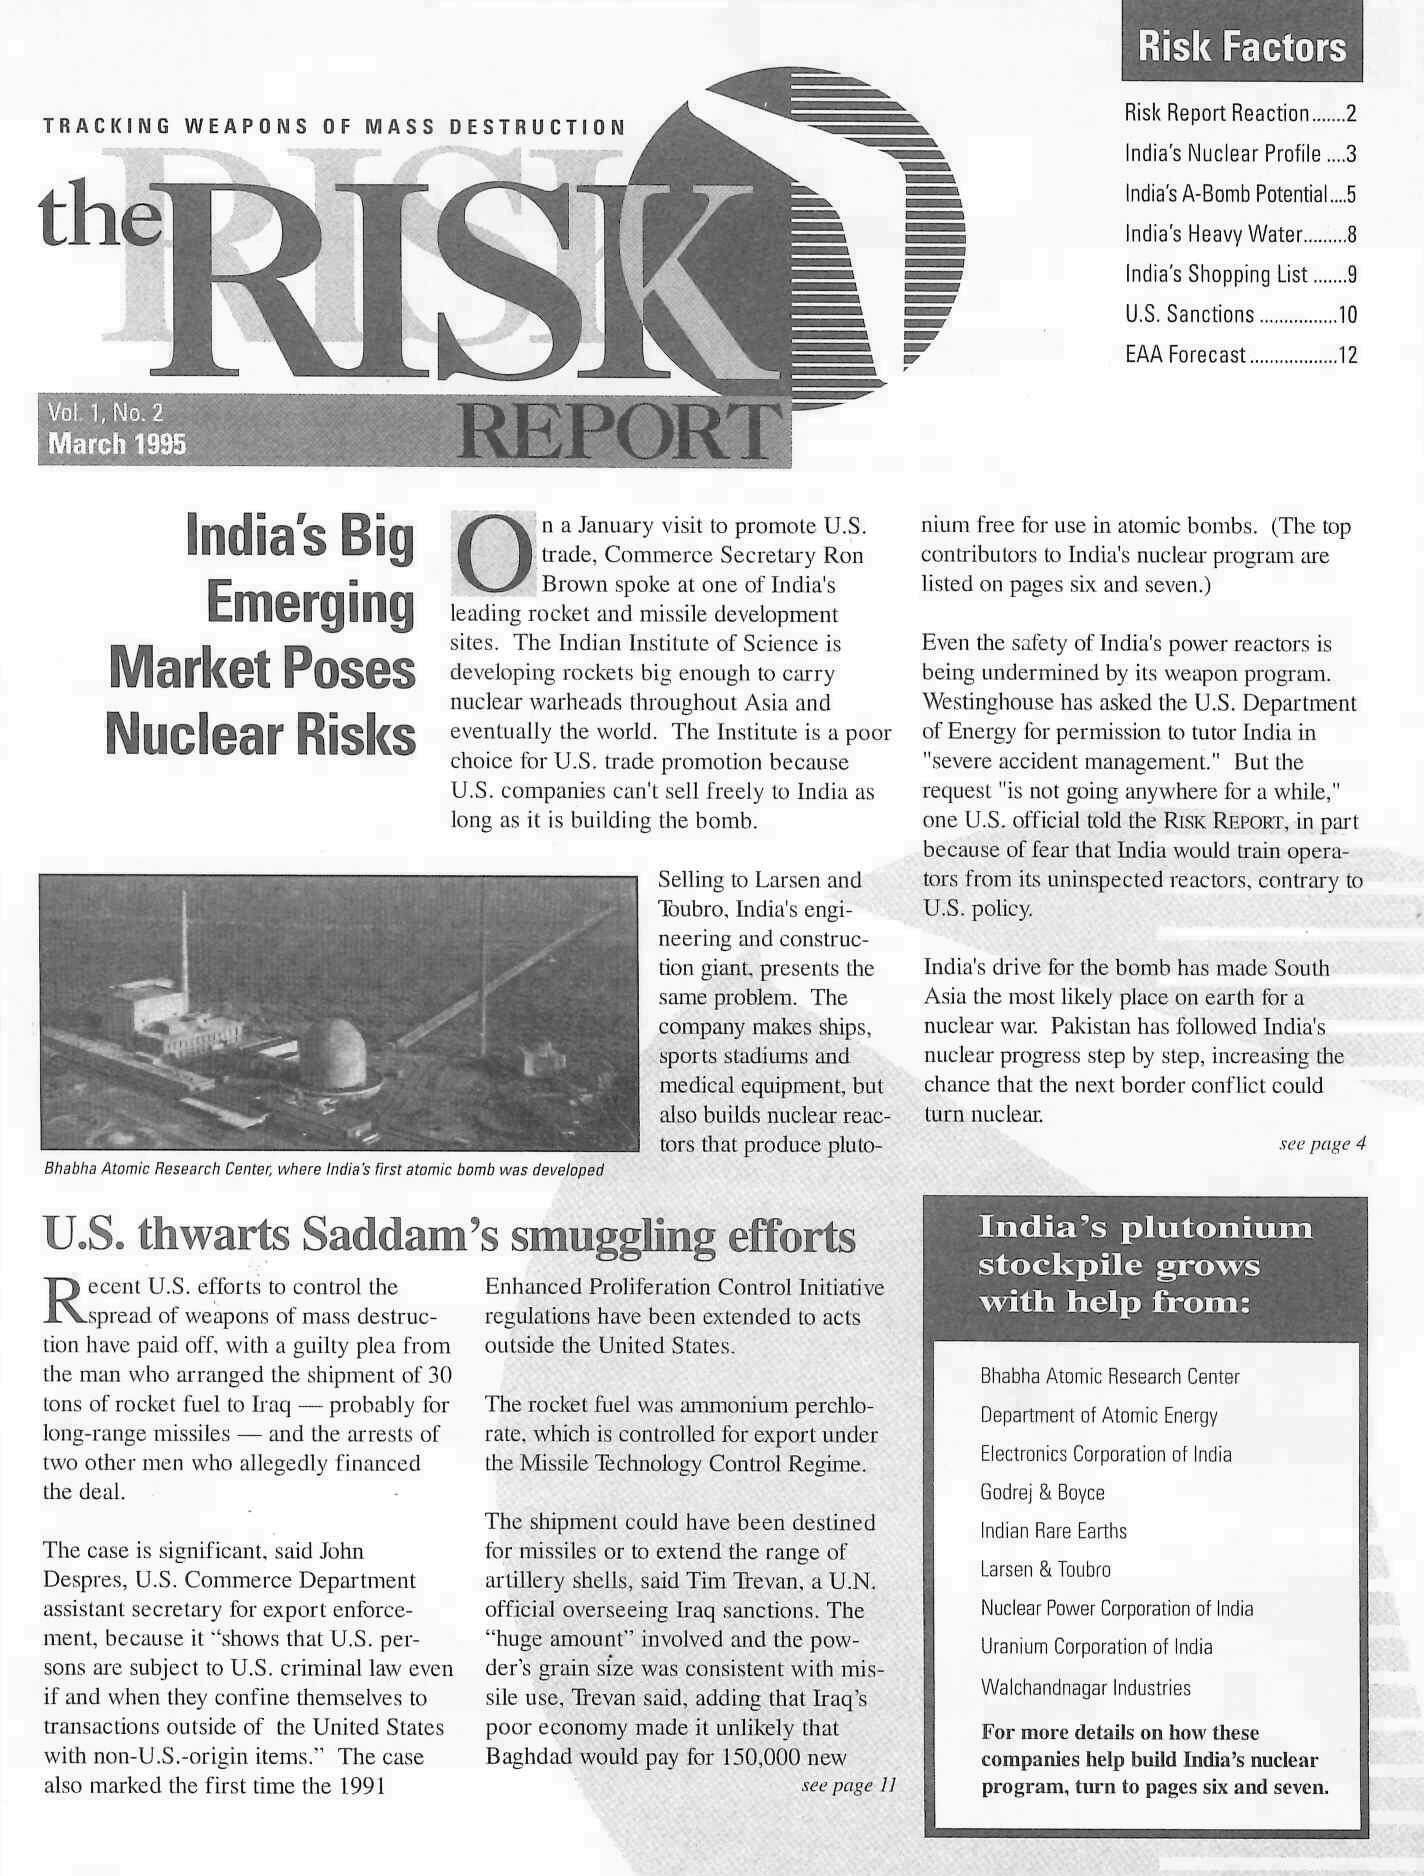 Risk Report – Wisconsin Project on Nuclear Arms Control